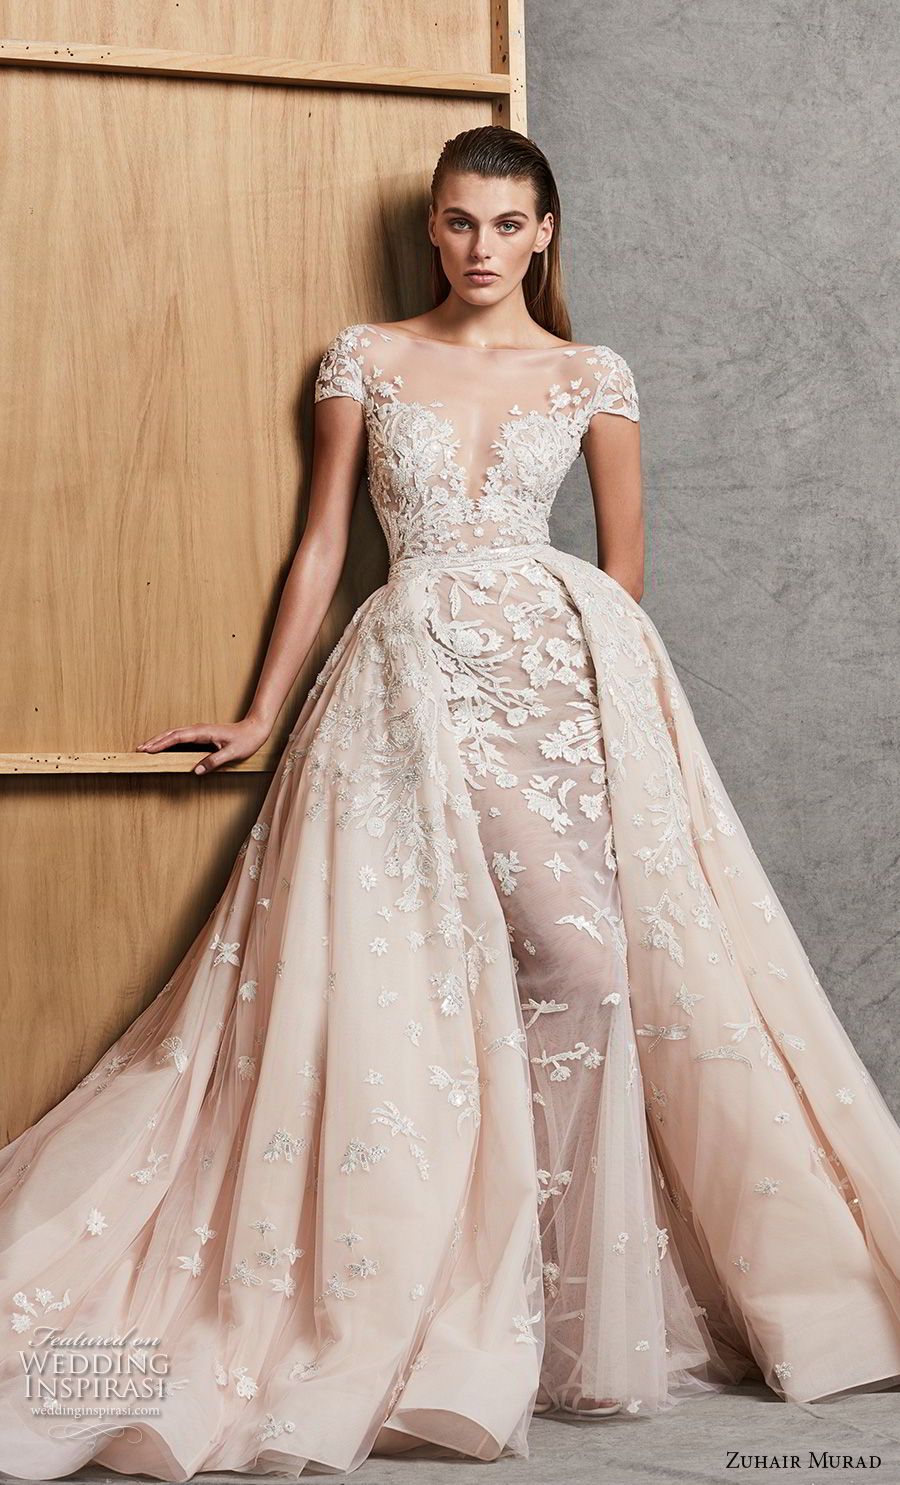 zuhair murad fall 2018 bridal cap sleeves illusion deep sweetheart neckline romantic princess blush fit and flare wedding dress a line overskirt chapel train (15) mv